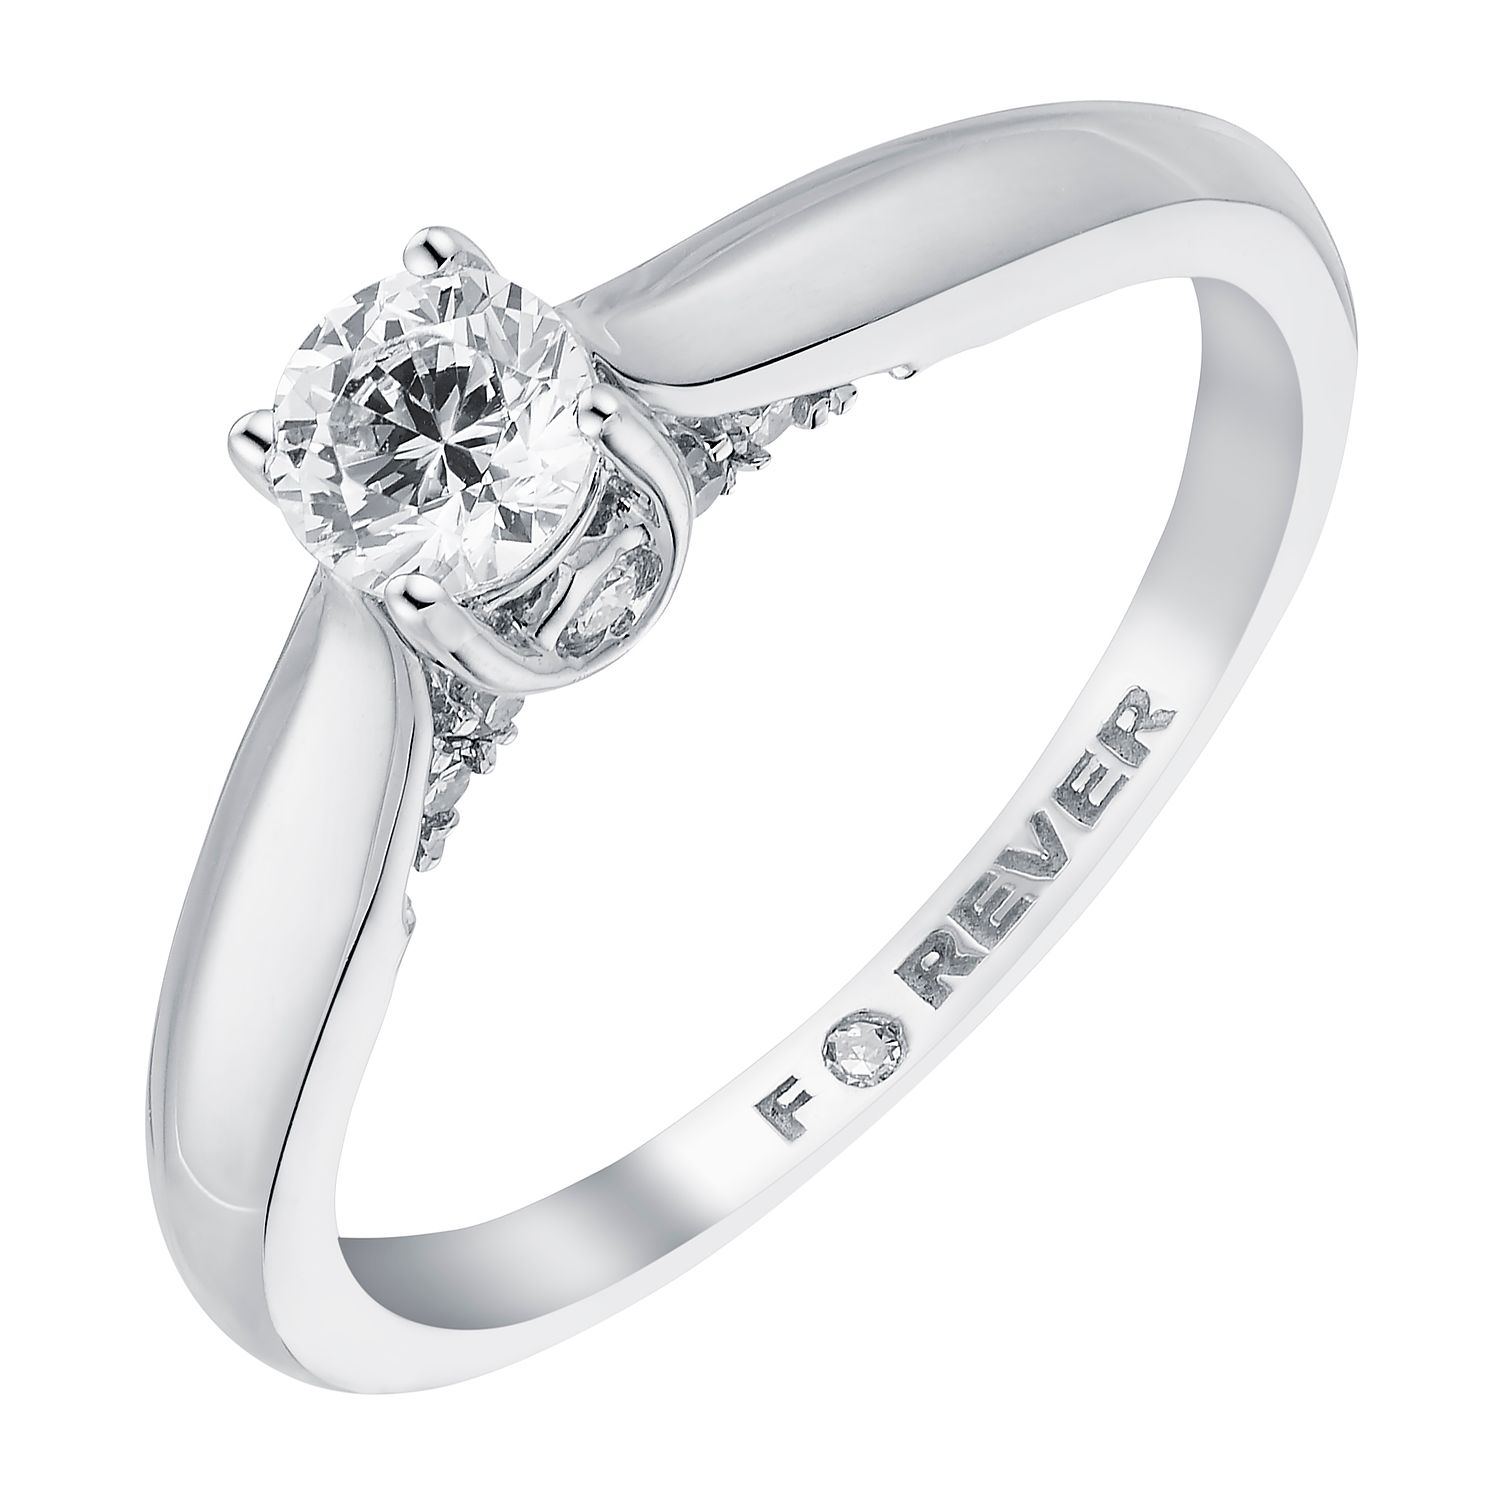 18ct White Gold 2/5 Carat Forever Diamond Ring - Product number 3617548